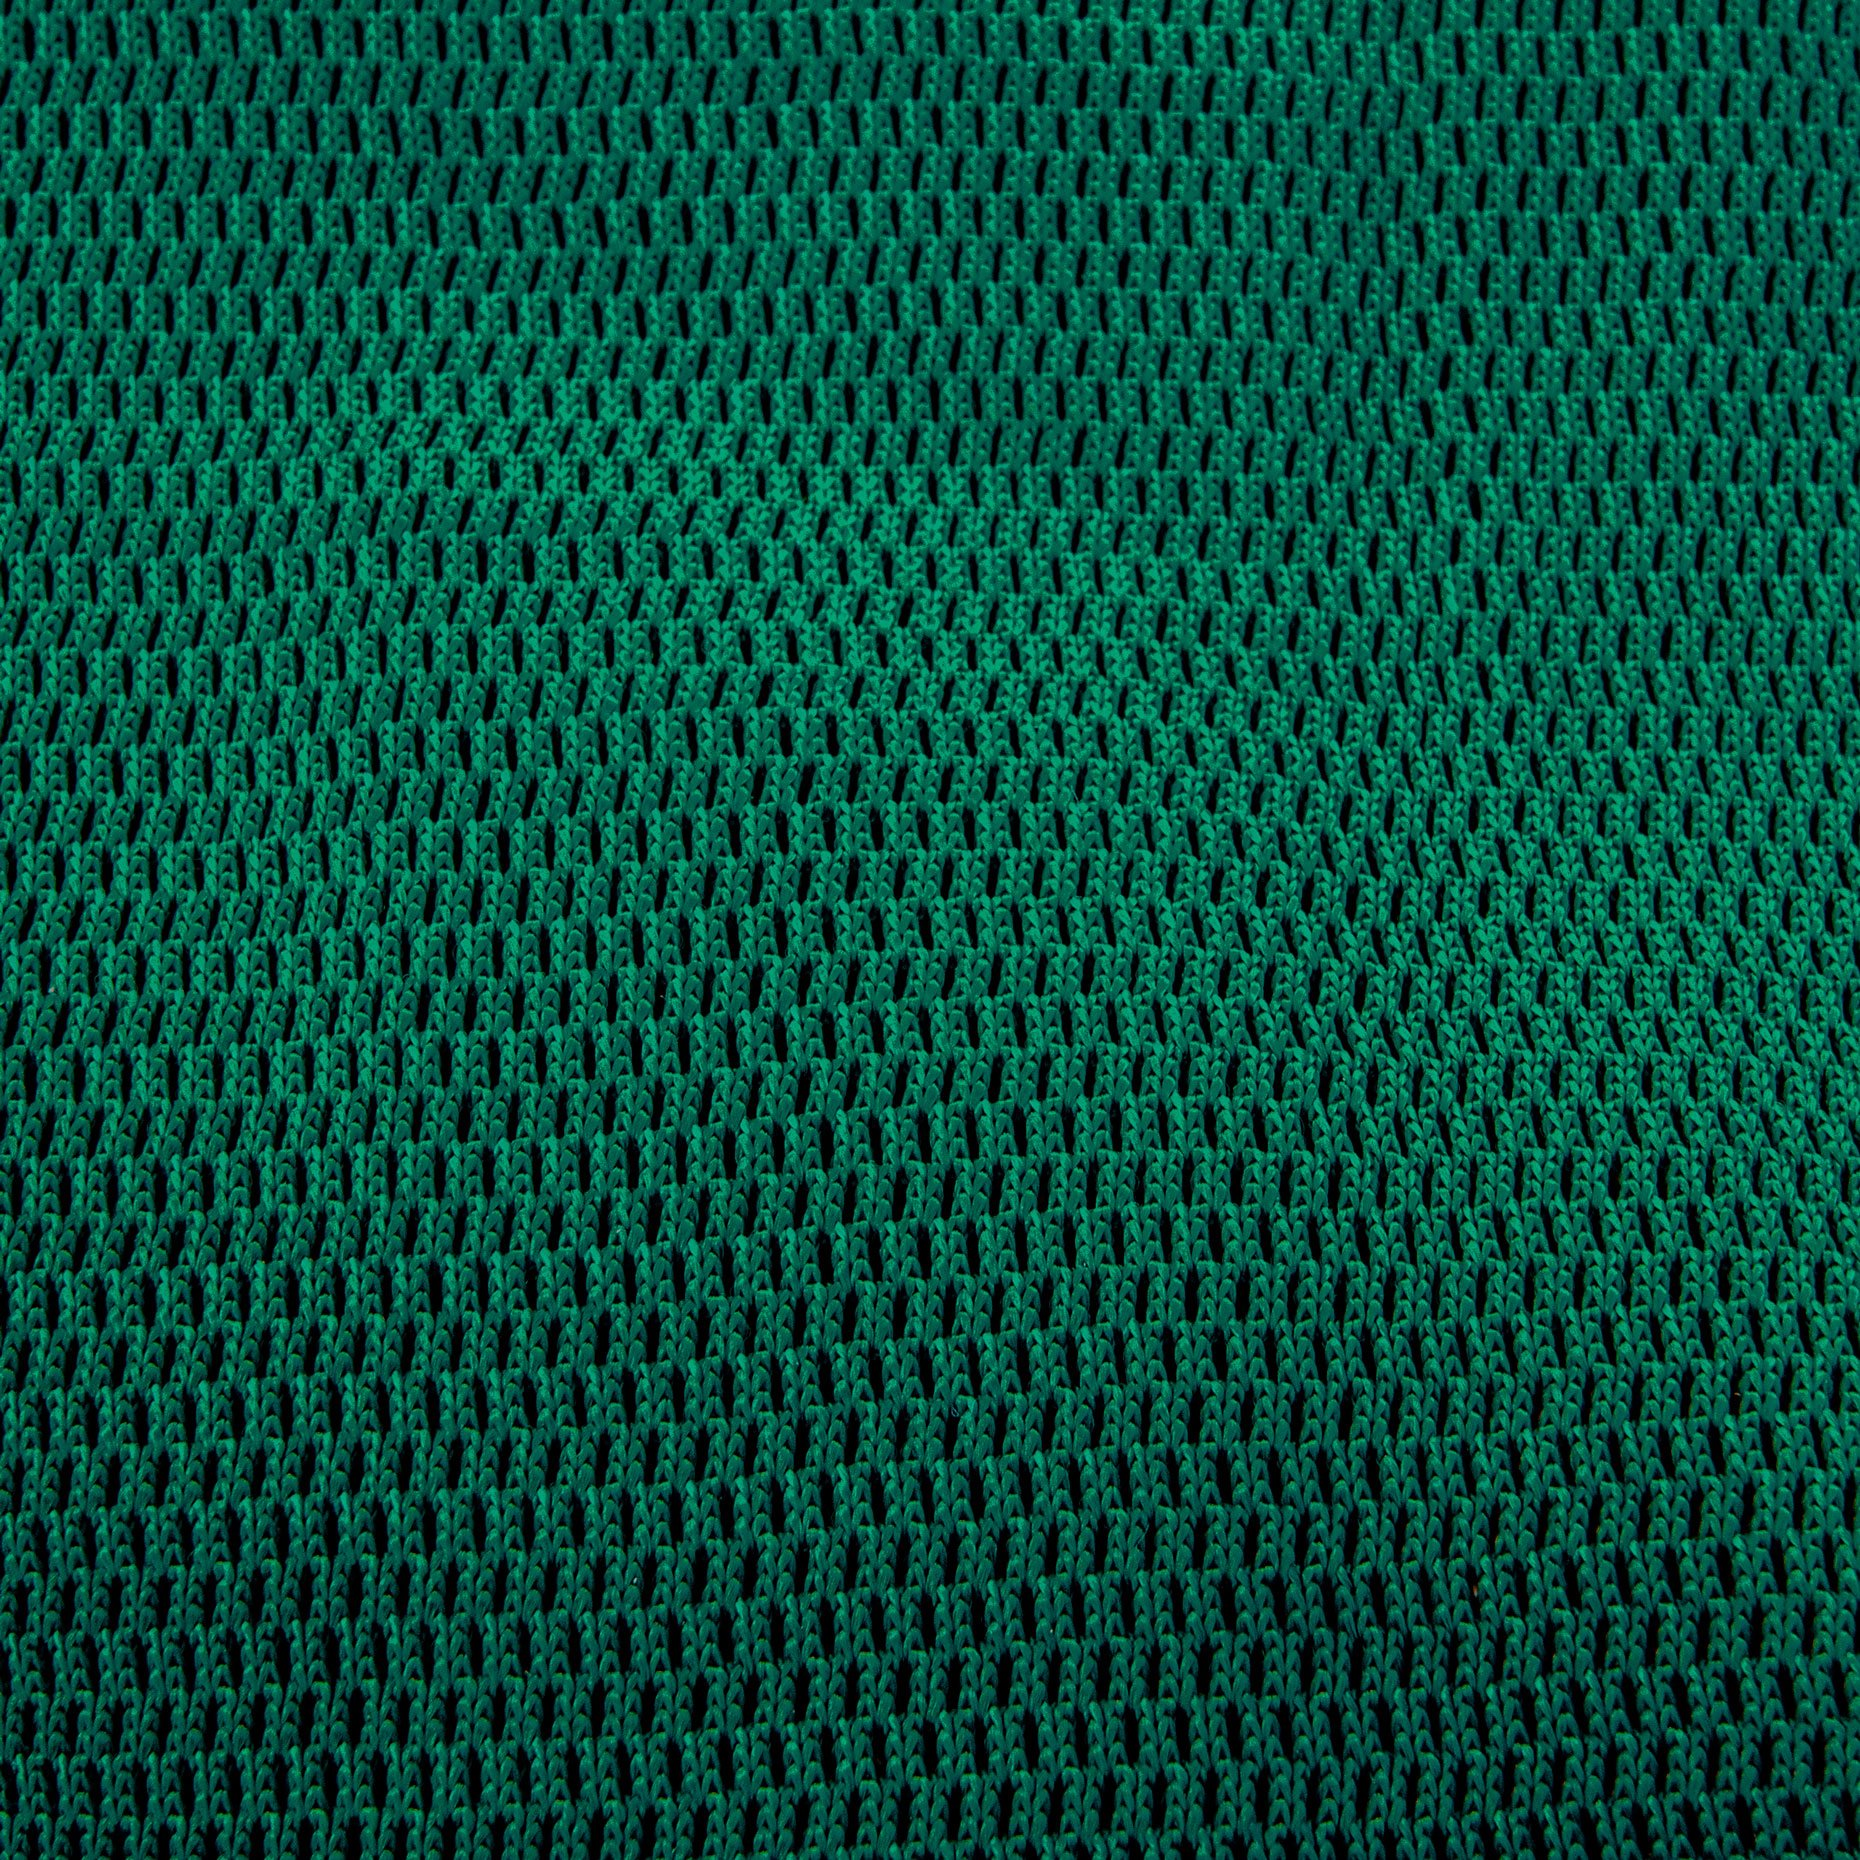 Replacement 10ft X 10ft Archery Grade Golf Impact Panel Netting (Green) – Super Strong Nets Guaranteed To Protect Your Golf Practice Cage From Damage [Net World Sports] by Net World Sports (Image #2)